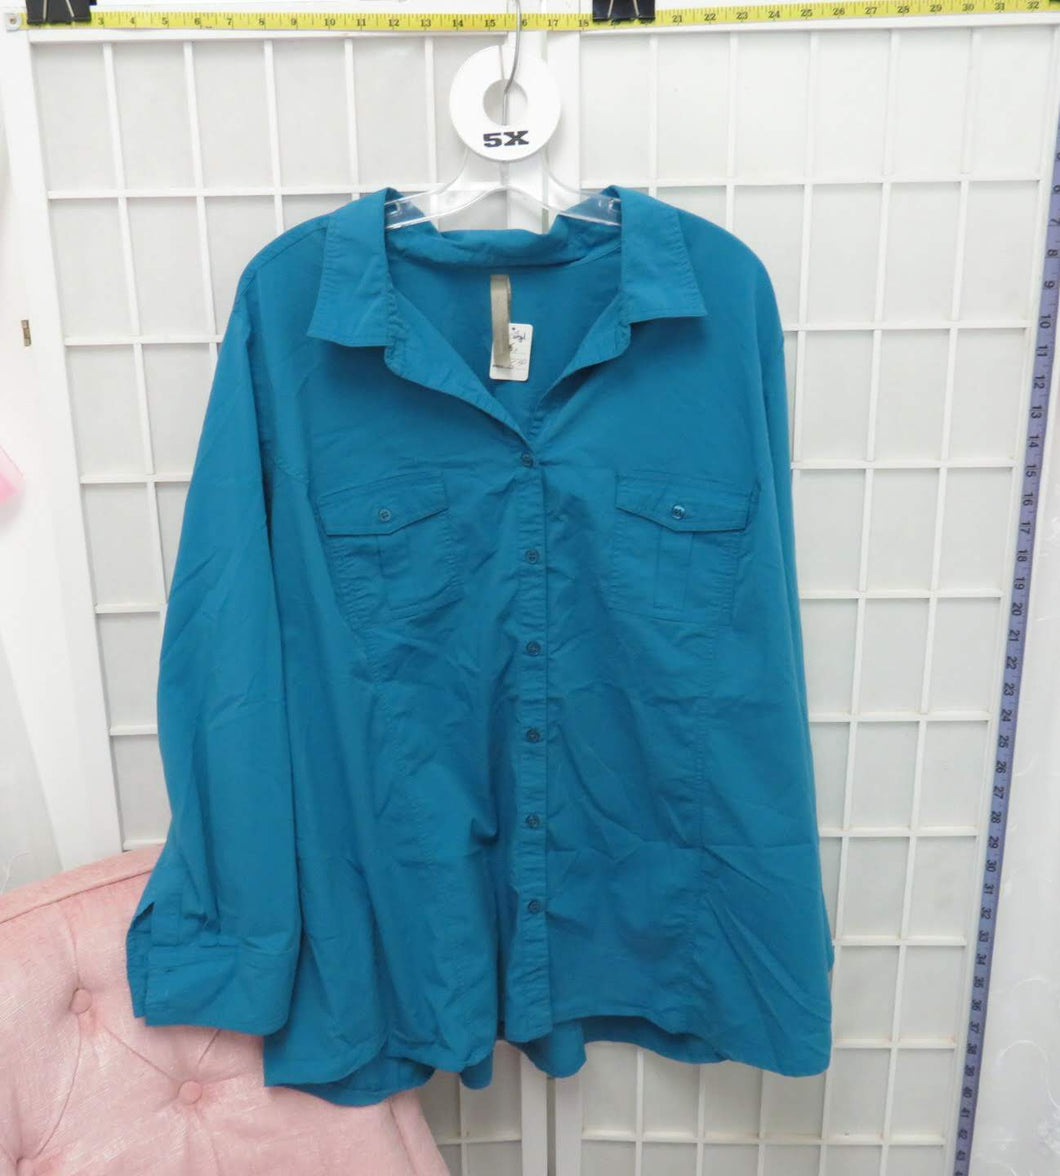 Long Sleeve Top - Size 5X